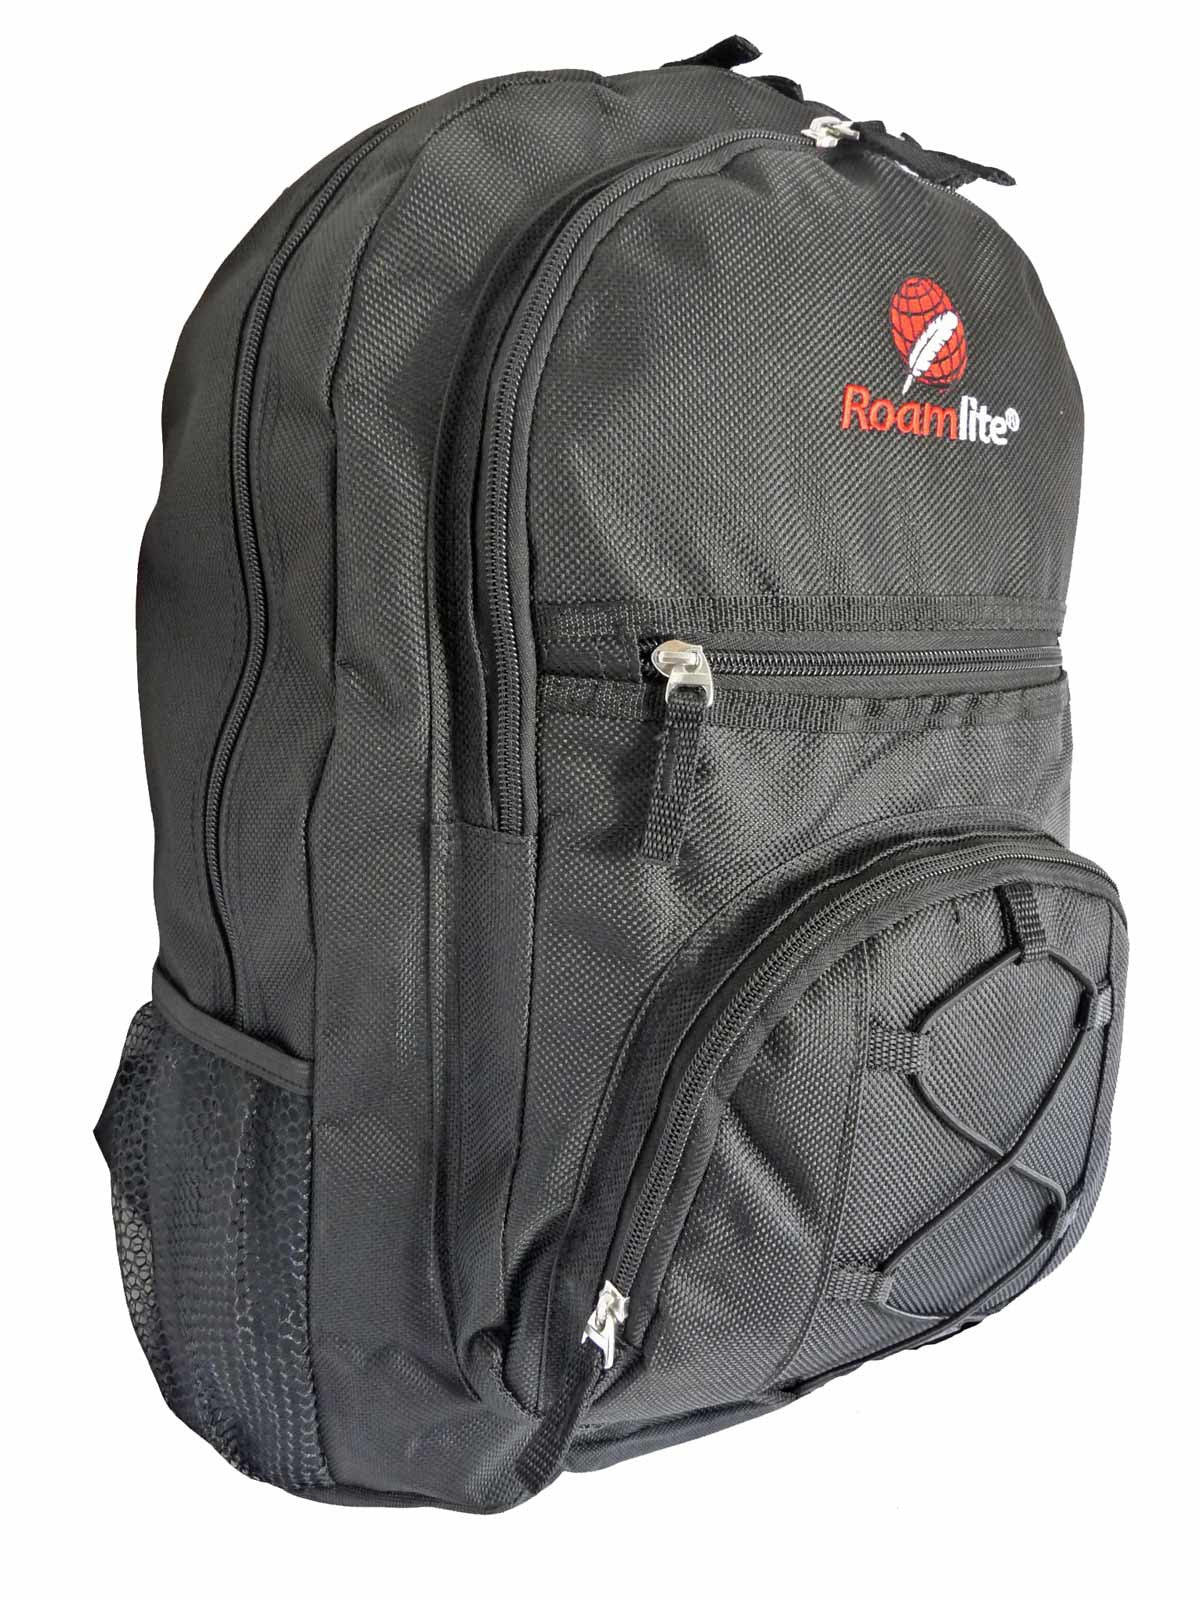 Kids School Bags RL37M Black R Side View